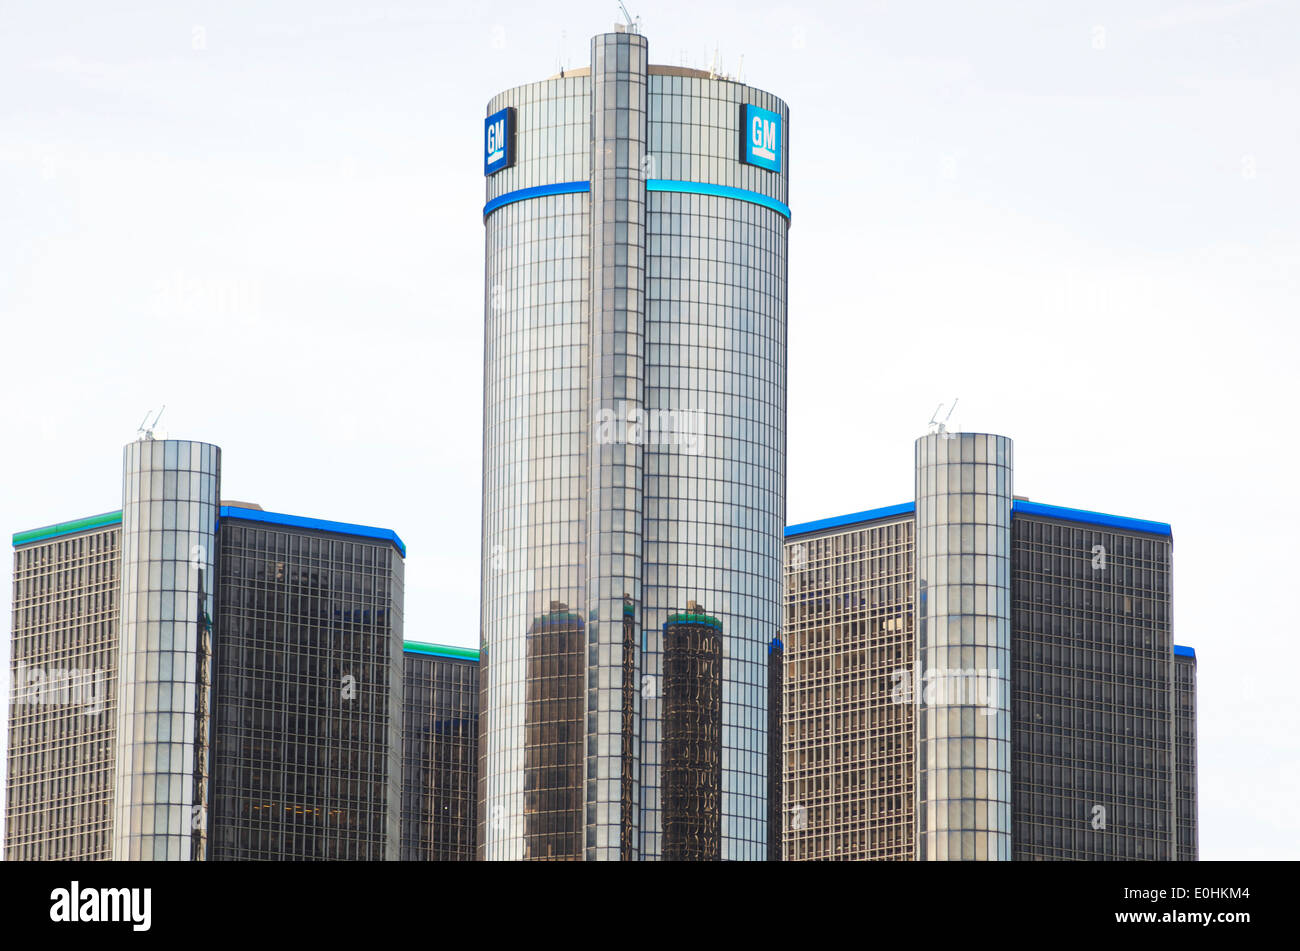 G.M. Building in downtown Detroit. - Stock Image